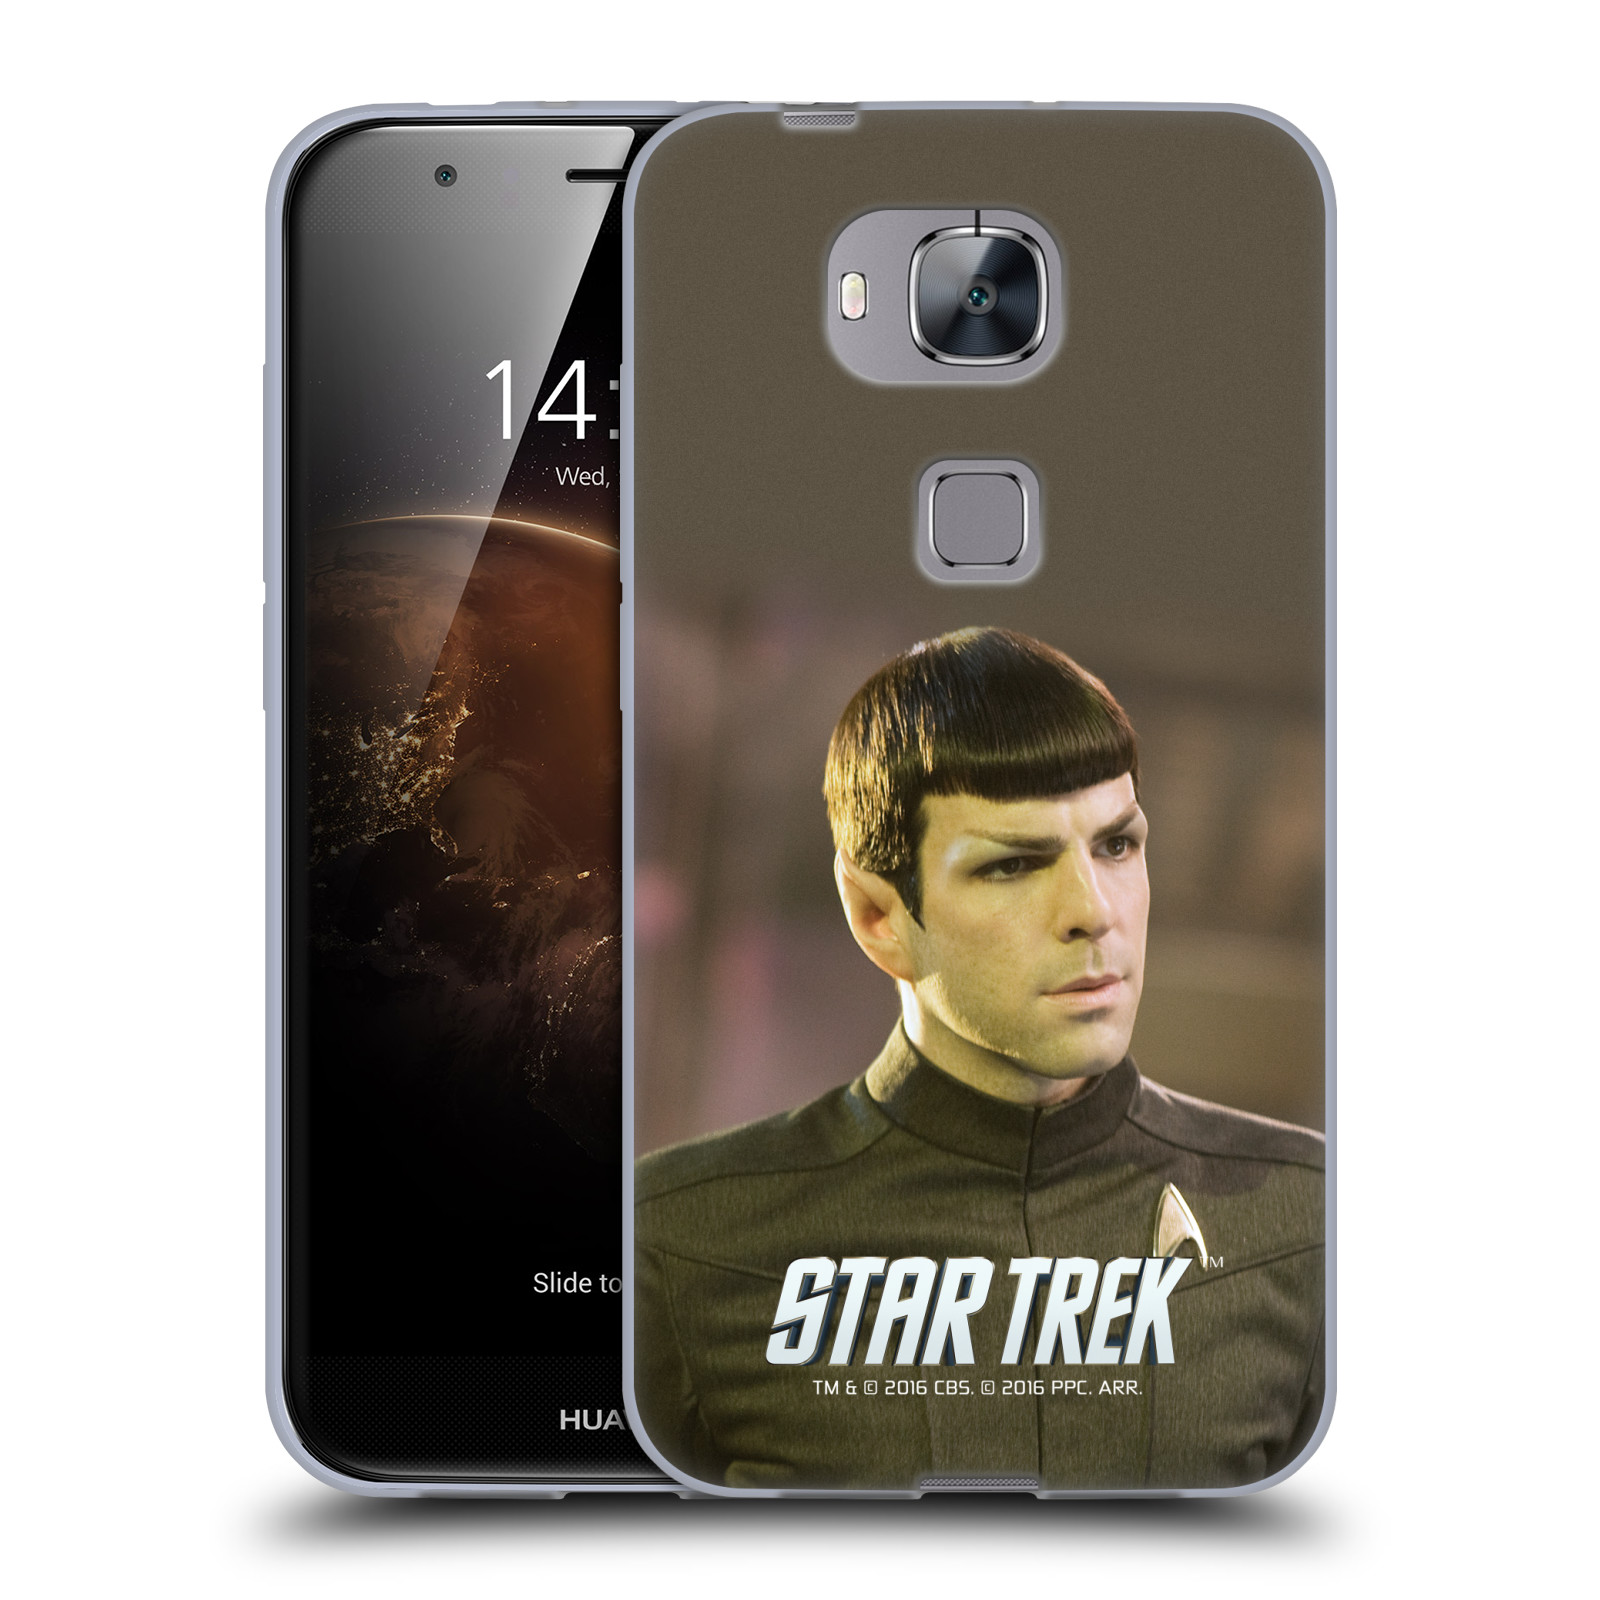 STAR-TREK-MOVIE-STILLS-REBOOT-XI-ETUI-COQUE-EN-GEL-POUR-HUAWEI-TELEPHONES-2